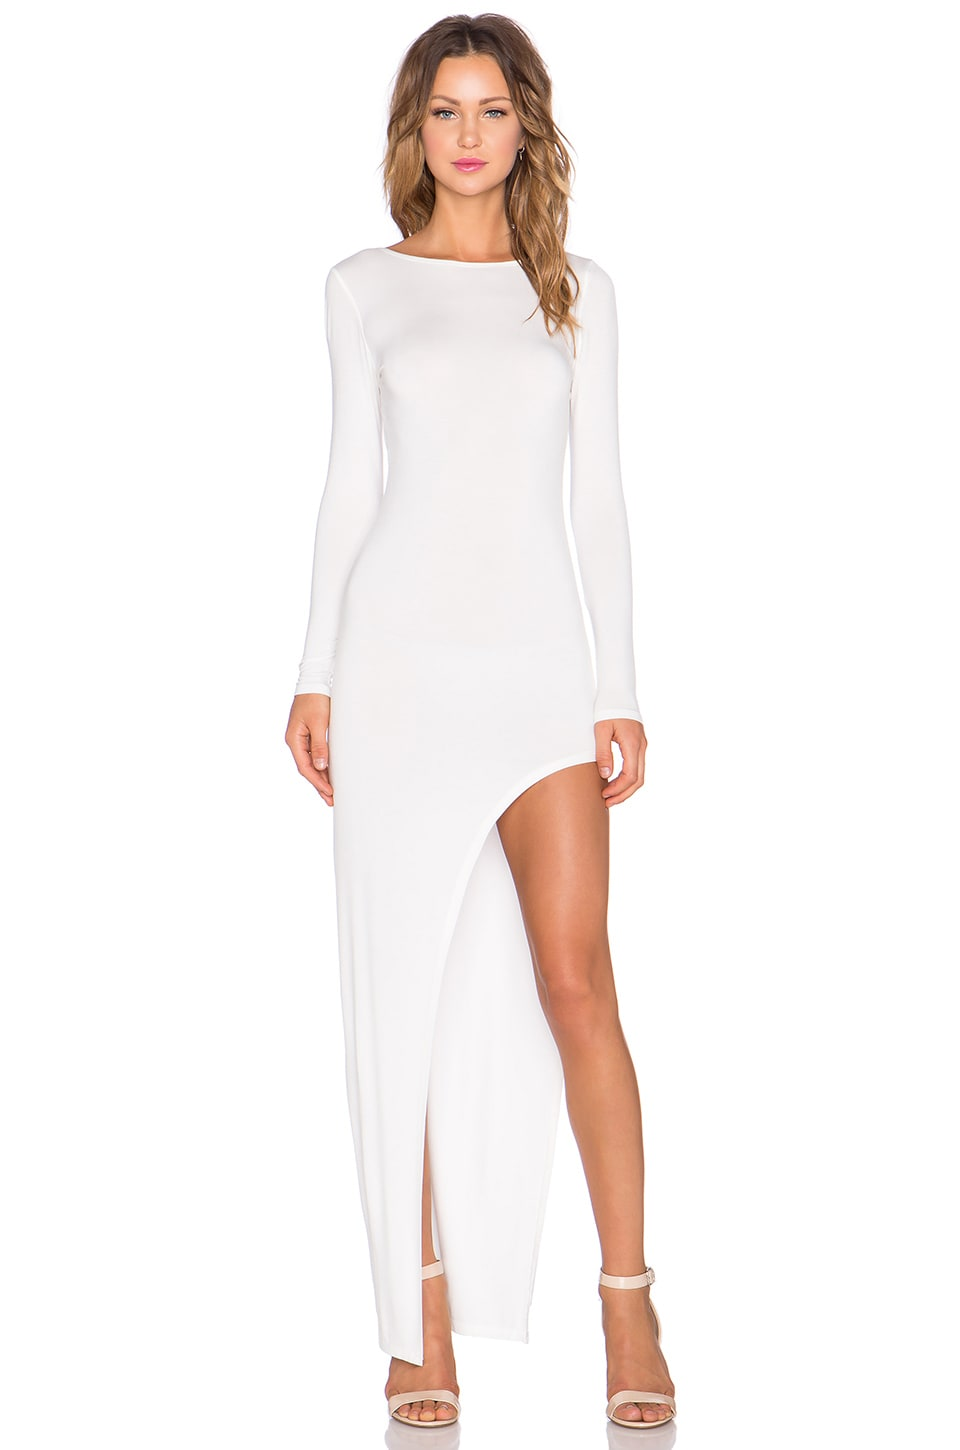 Lovers + Friends x REVOLVE Lasting Impressions Dress in White